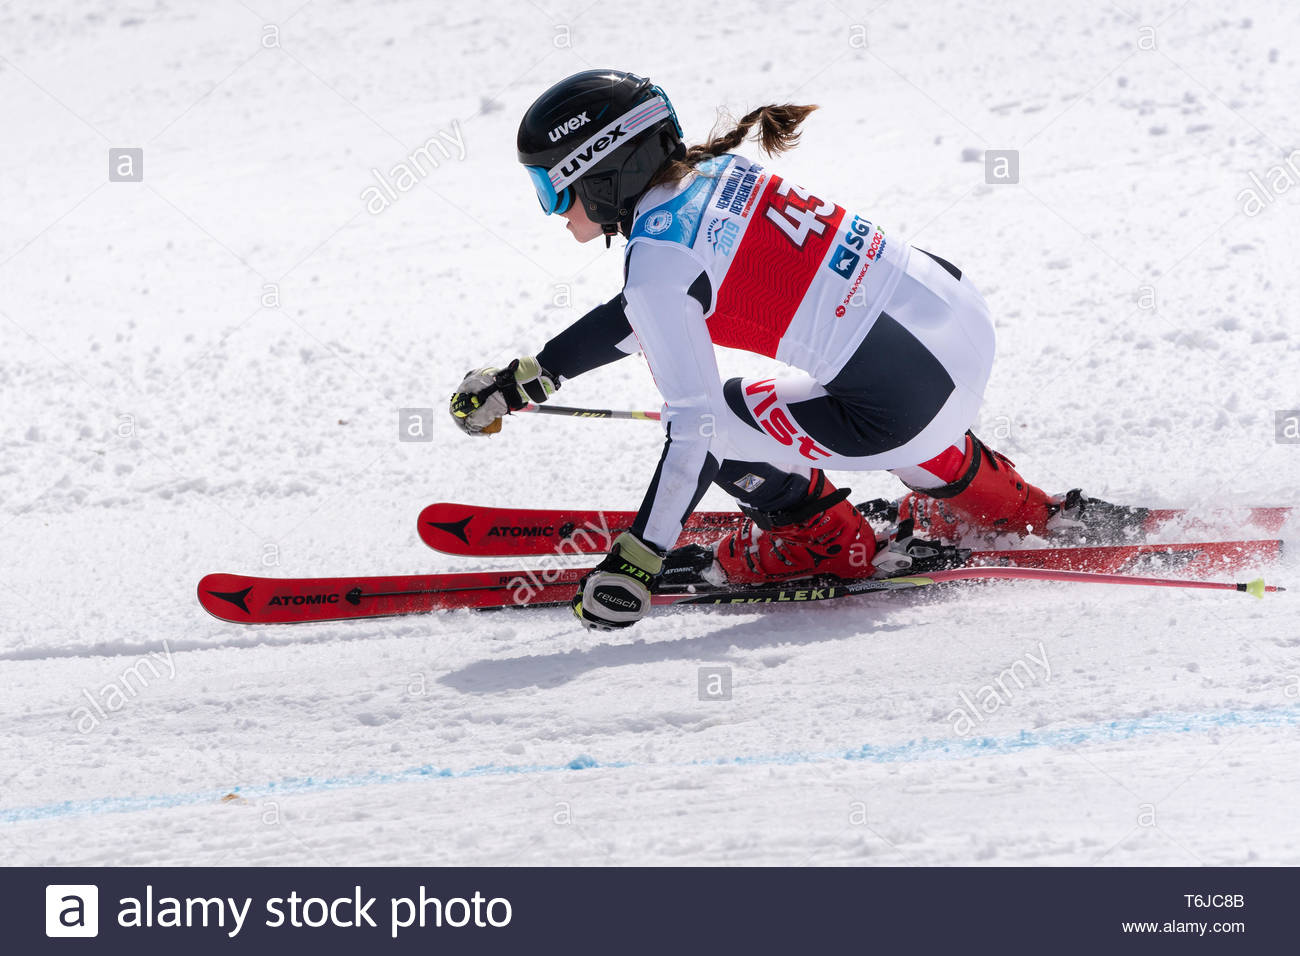 KAMCHATKA PENINSULA, RUSSIAN FEDERATION - APRIL 1, 2019: Mountain skier Ellina Dyachenko (Sakhalin Region) skiing down snowy mountain slope. Russian W - Stock Image